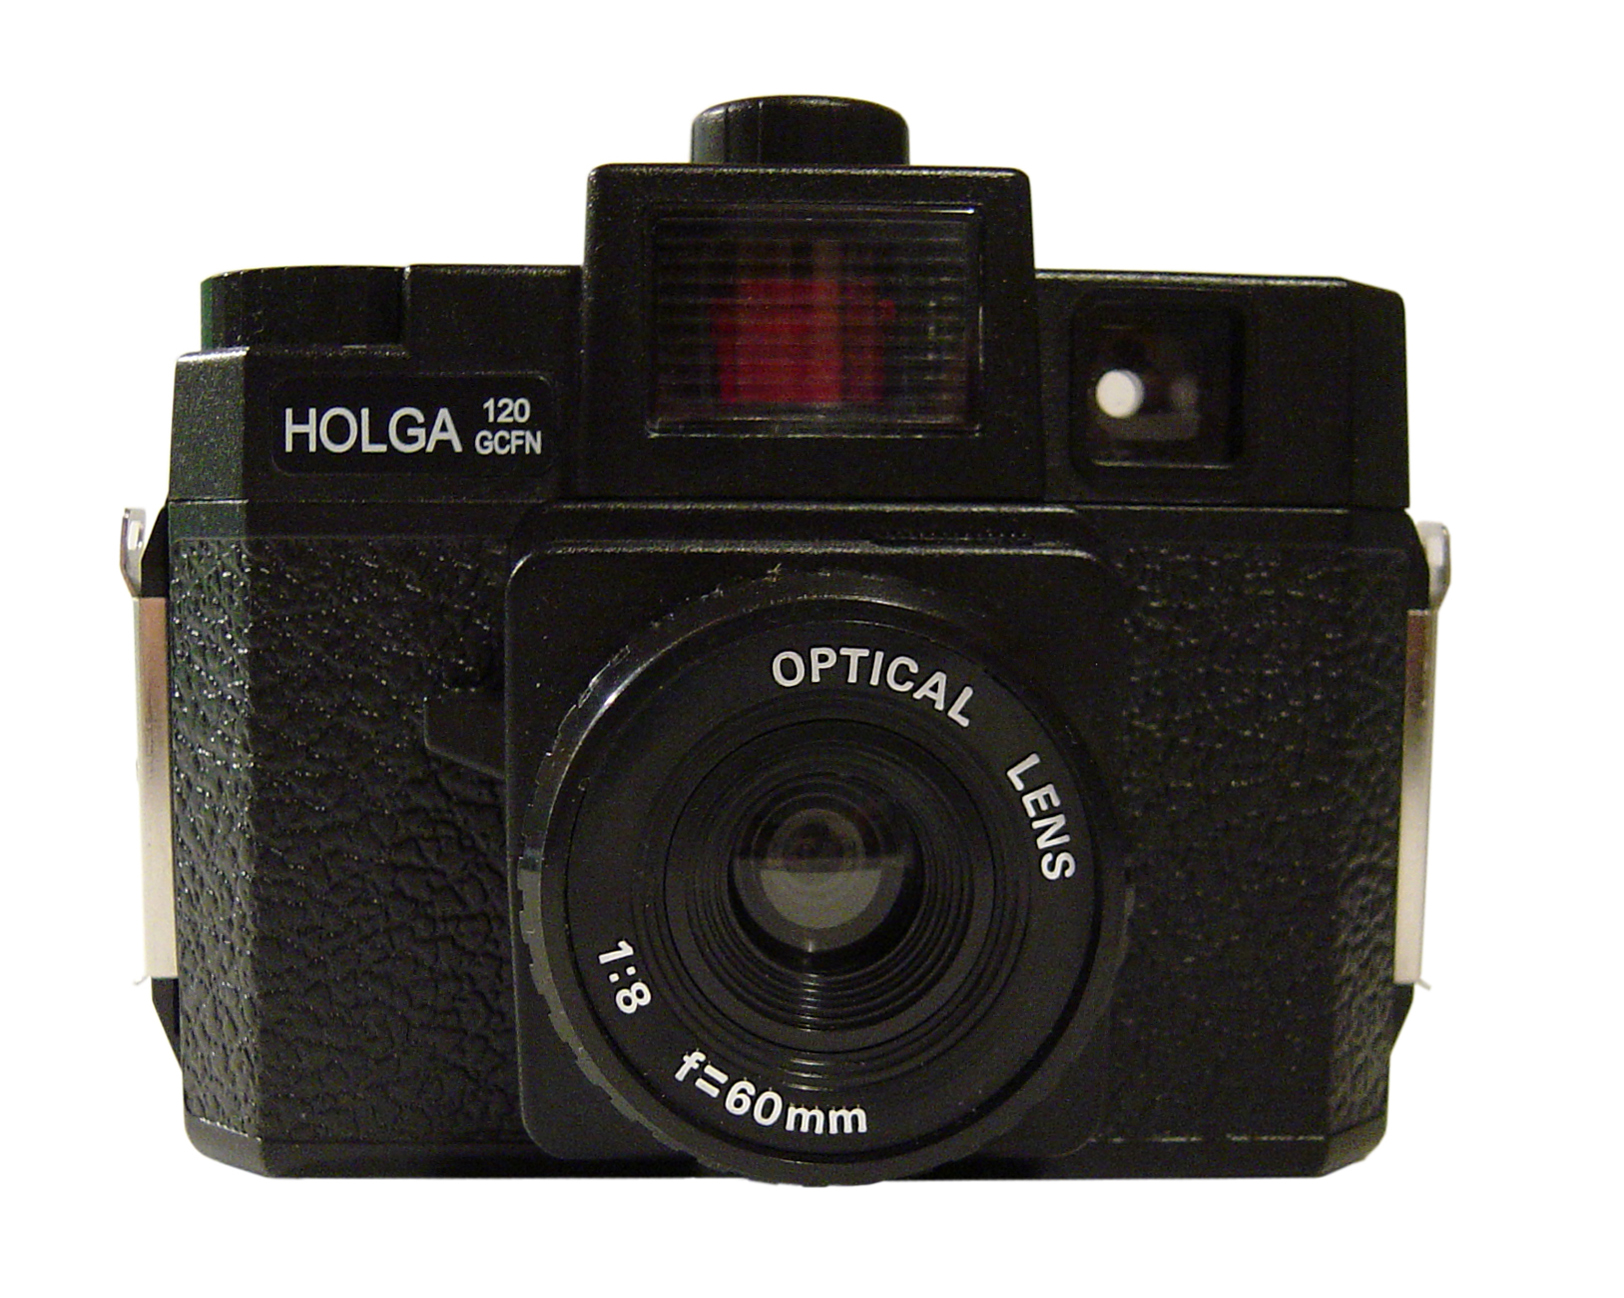 http://upload.wikimedia.org/wikipedia/commons/b/b6/Holga_120_GCFN.jpg